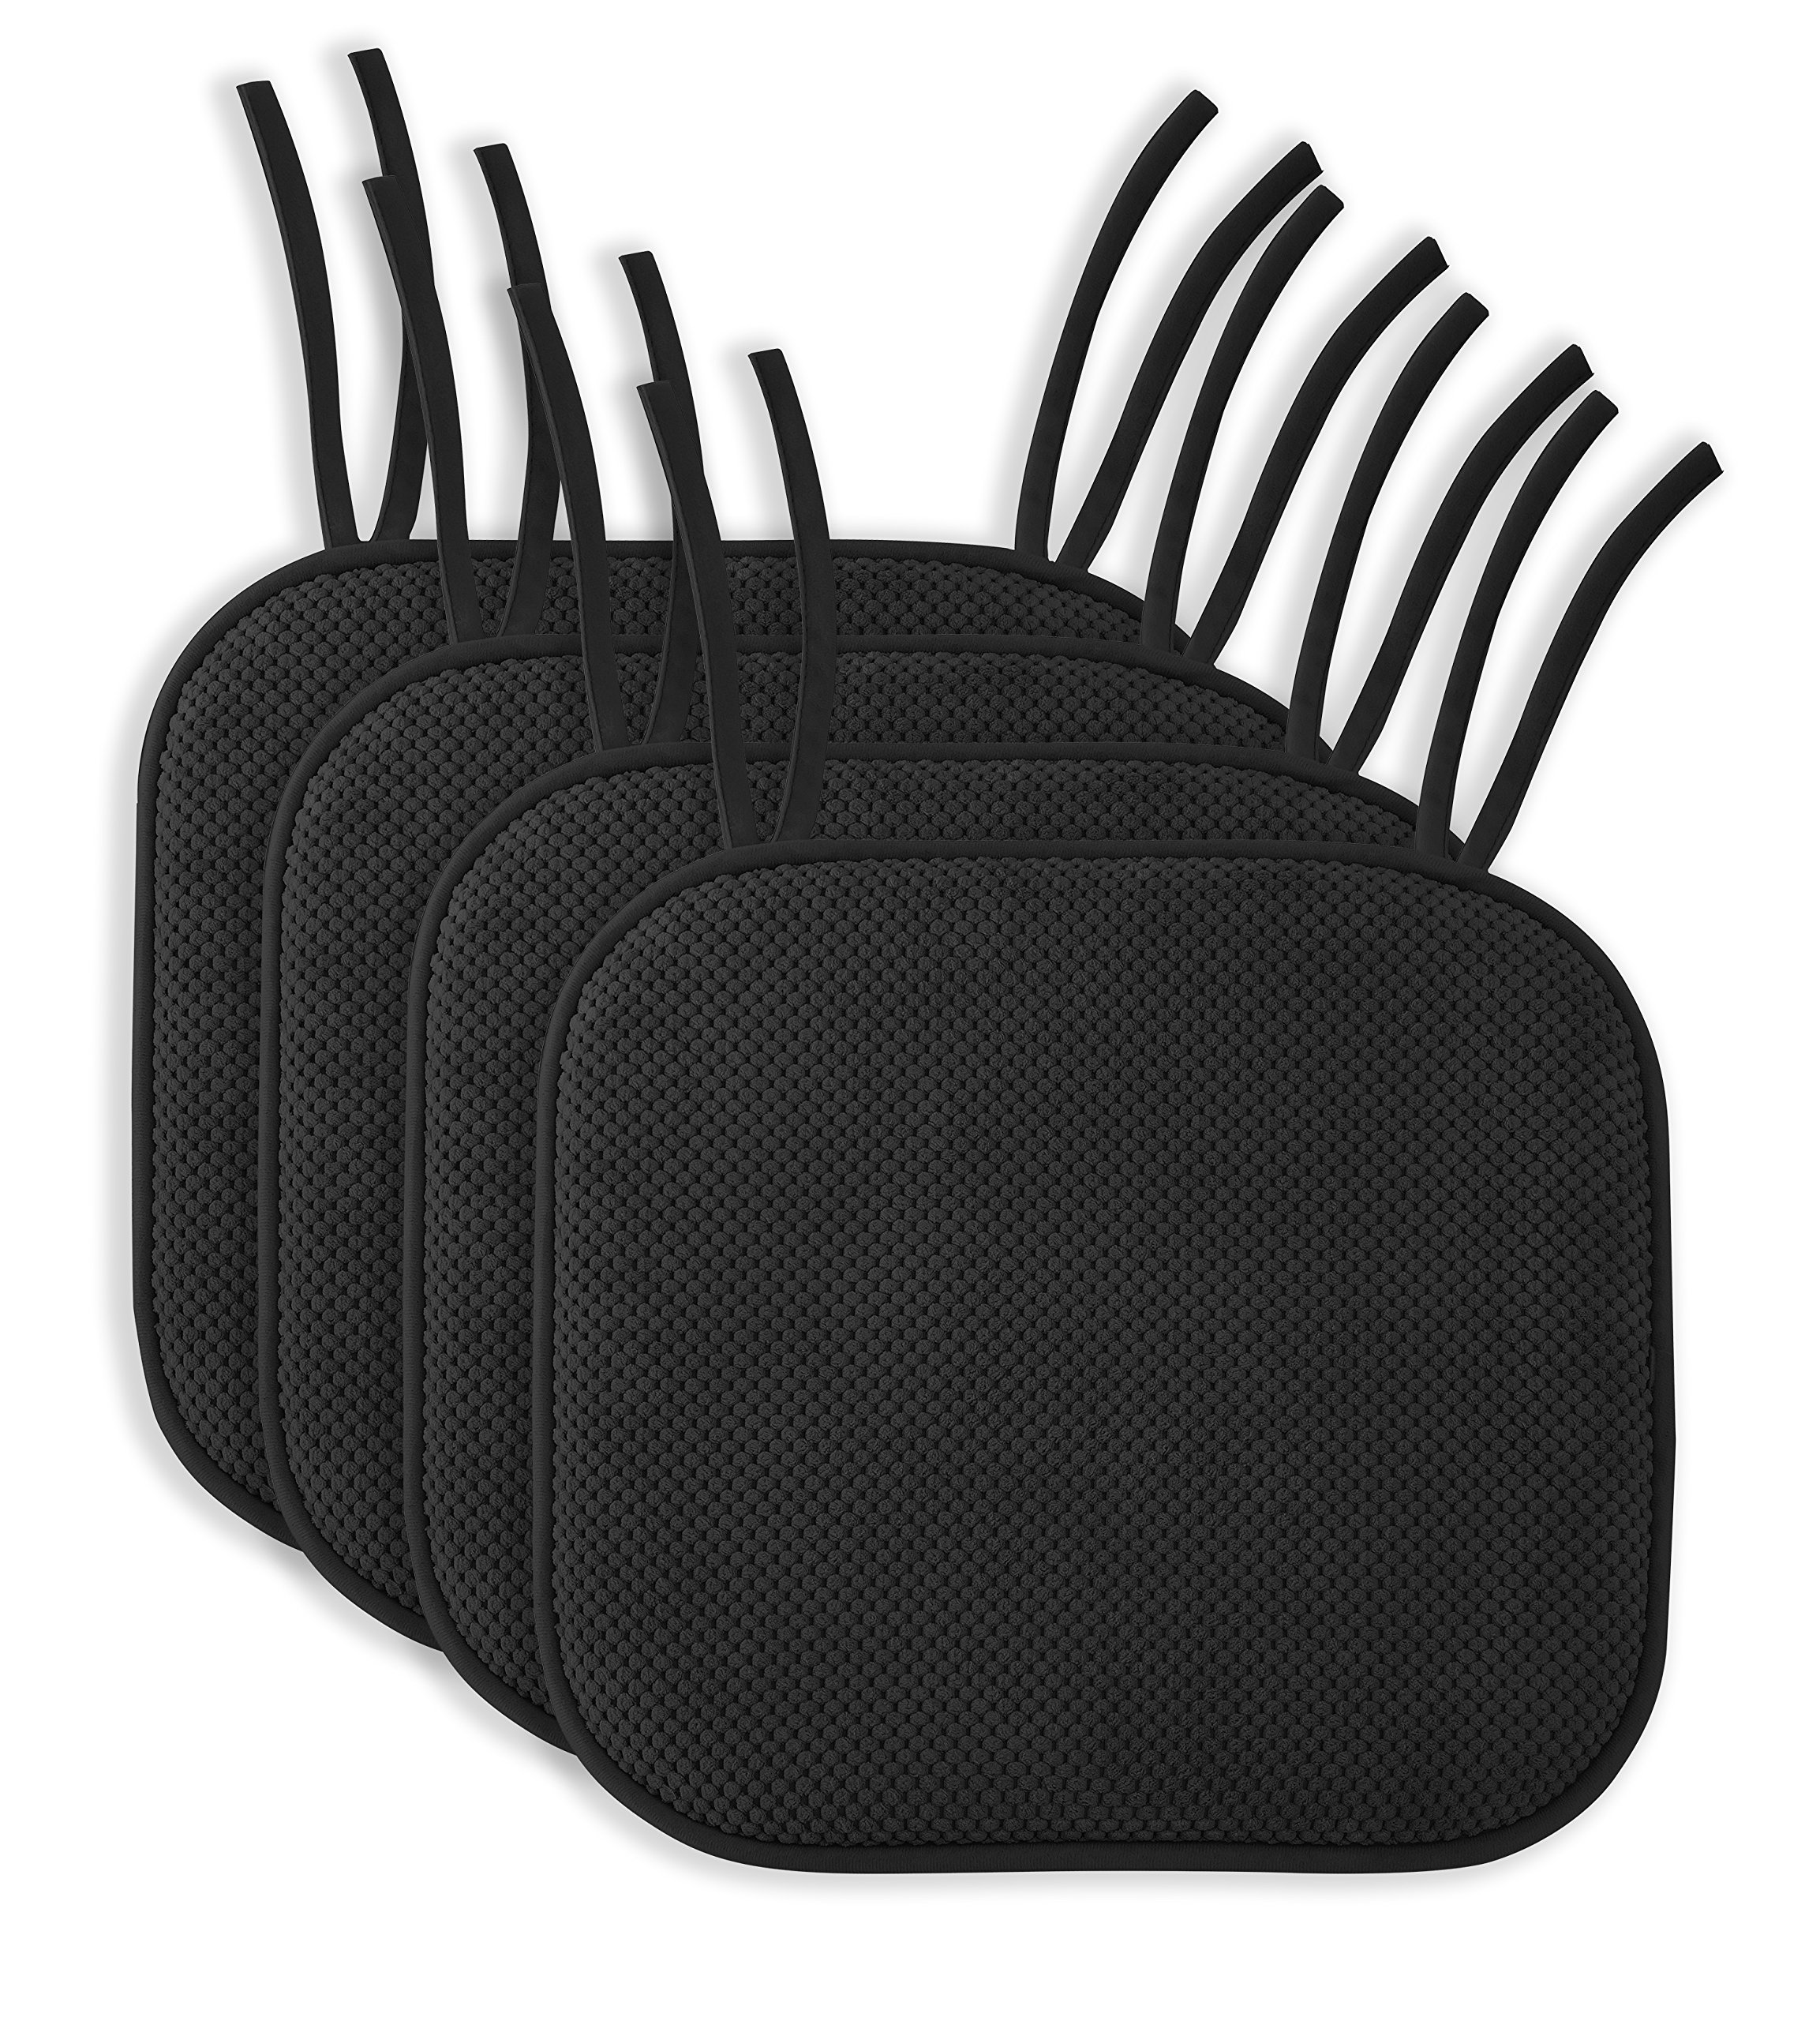 4 Pack: Ellington Home Non Slip Memory Foam Seat Cushion Chair Pads with Ties - 17'' x 16'' - Black